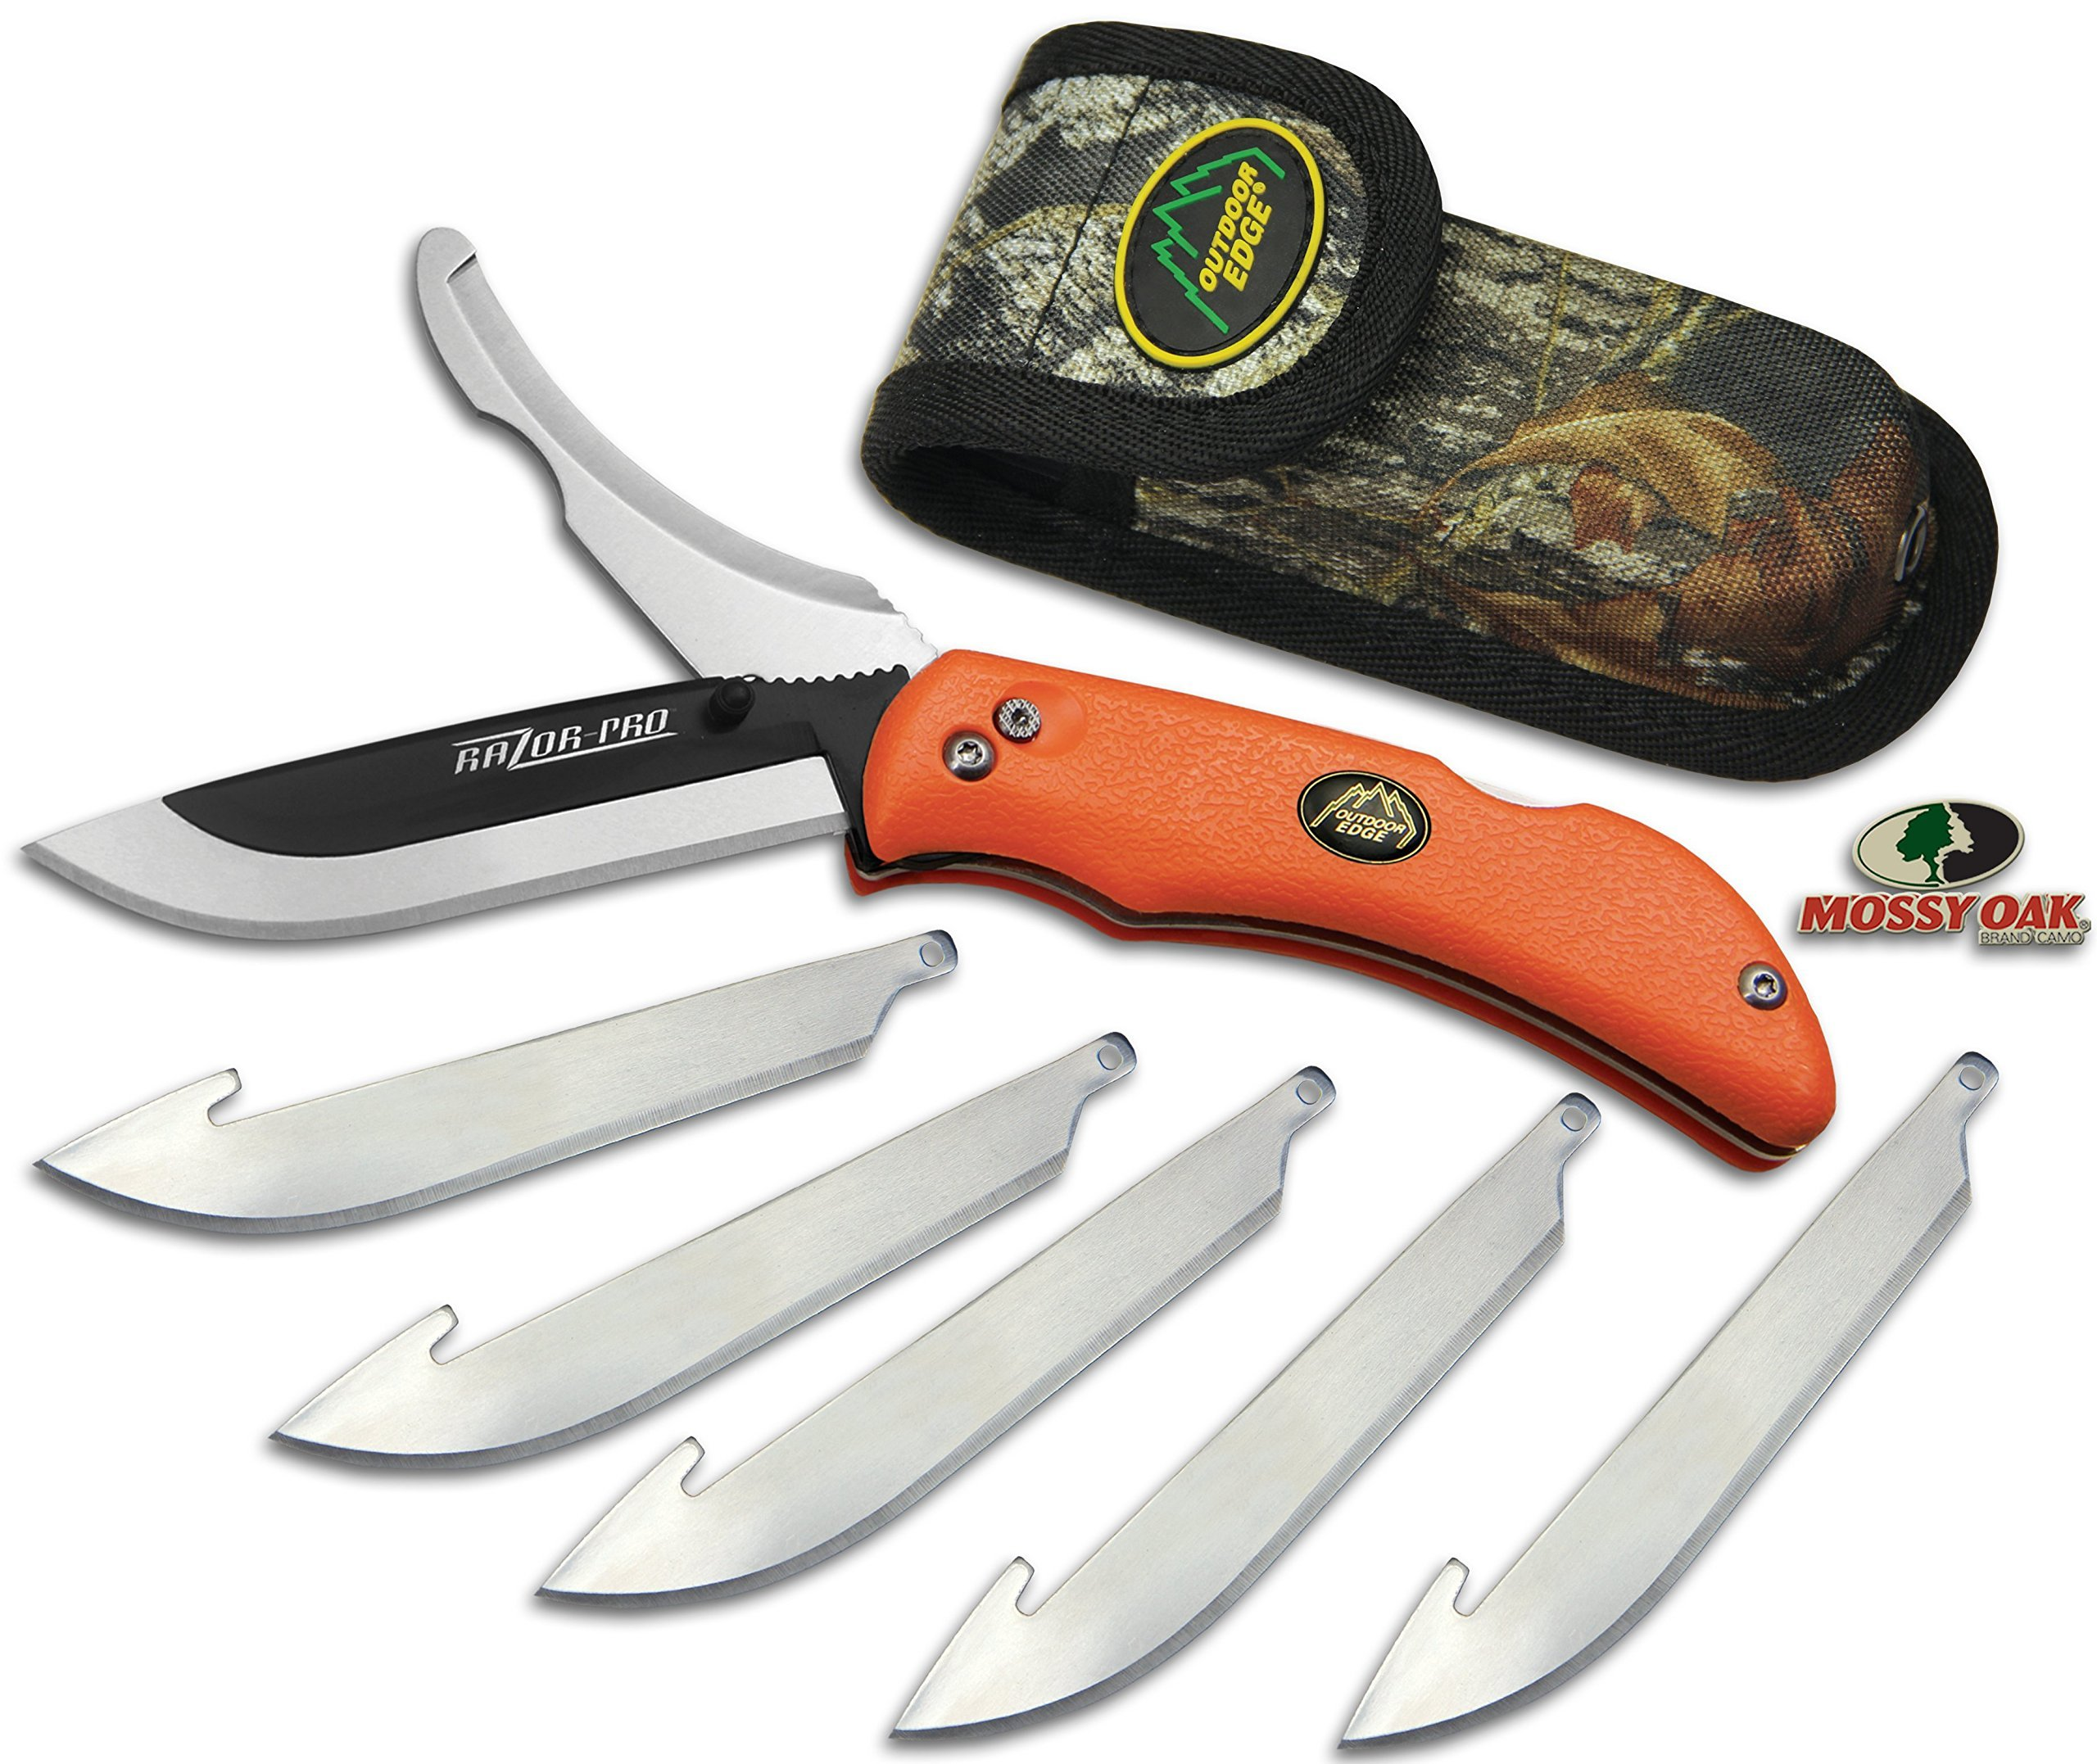 Outdoor Edge RazorPro, RO-20, Double Blade Folding Hunting Knife - Replacement Razor Blade, Gutting Blade, Blaze Orange Non-Slip TPR Handle, Mossy Oak Nylon Sheath by Outdoor Edge (Image #1)